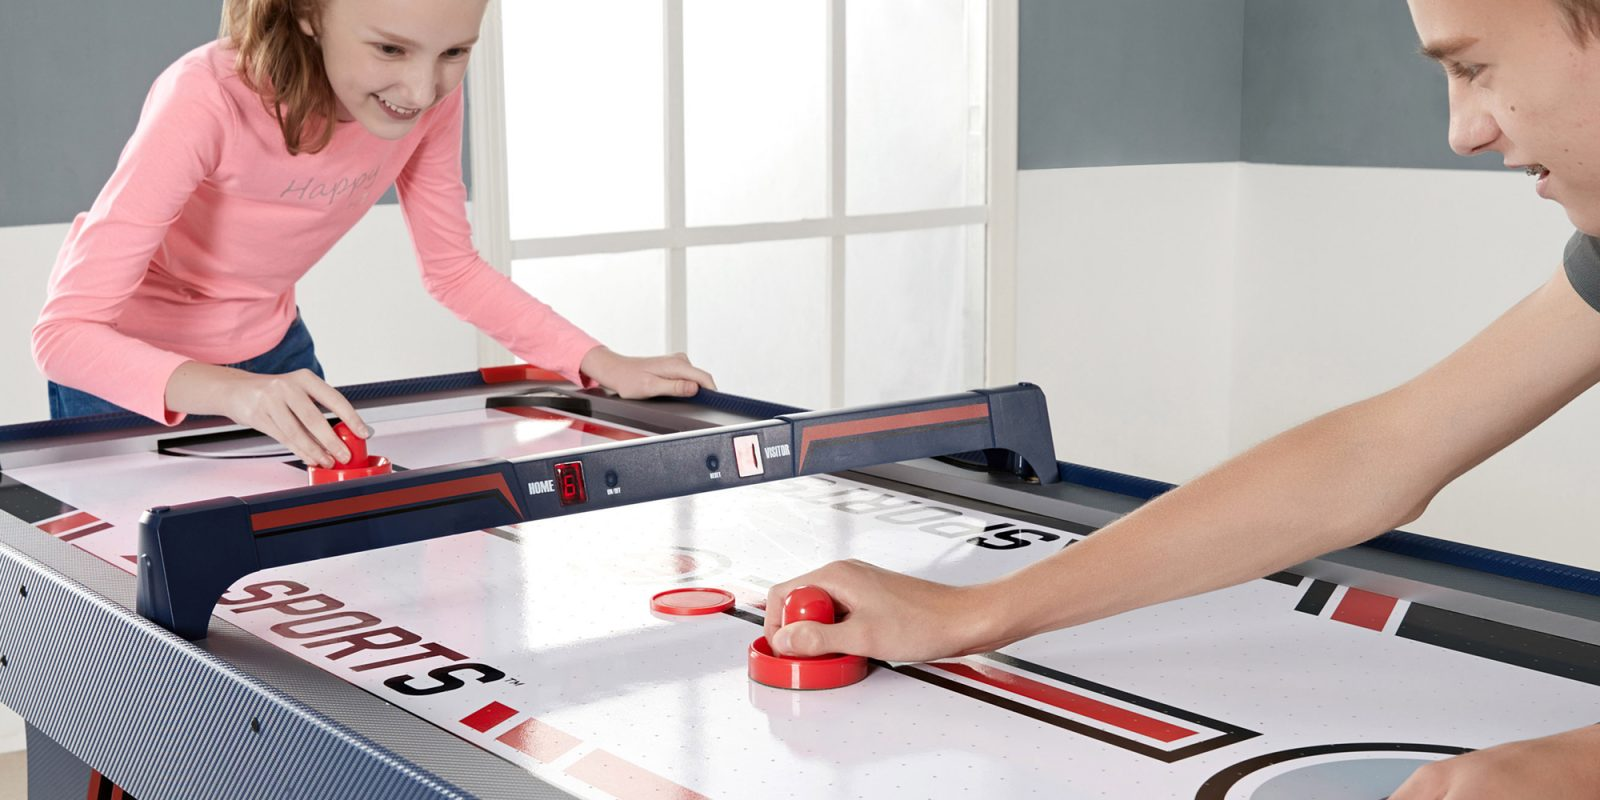 EA's 60-inch electronic air hockey table falls to new low at $49 shipped (Reg. $80)